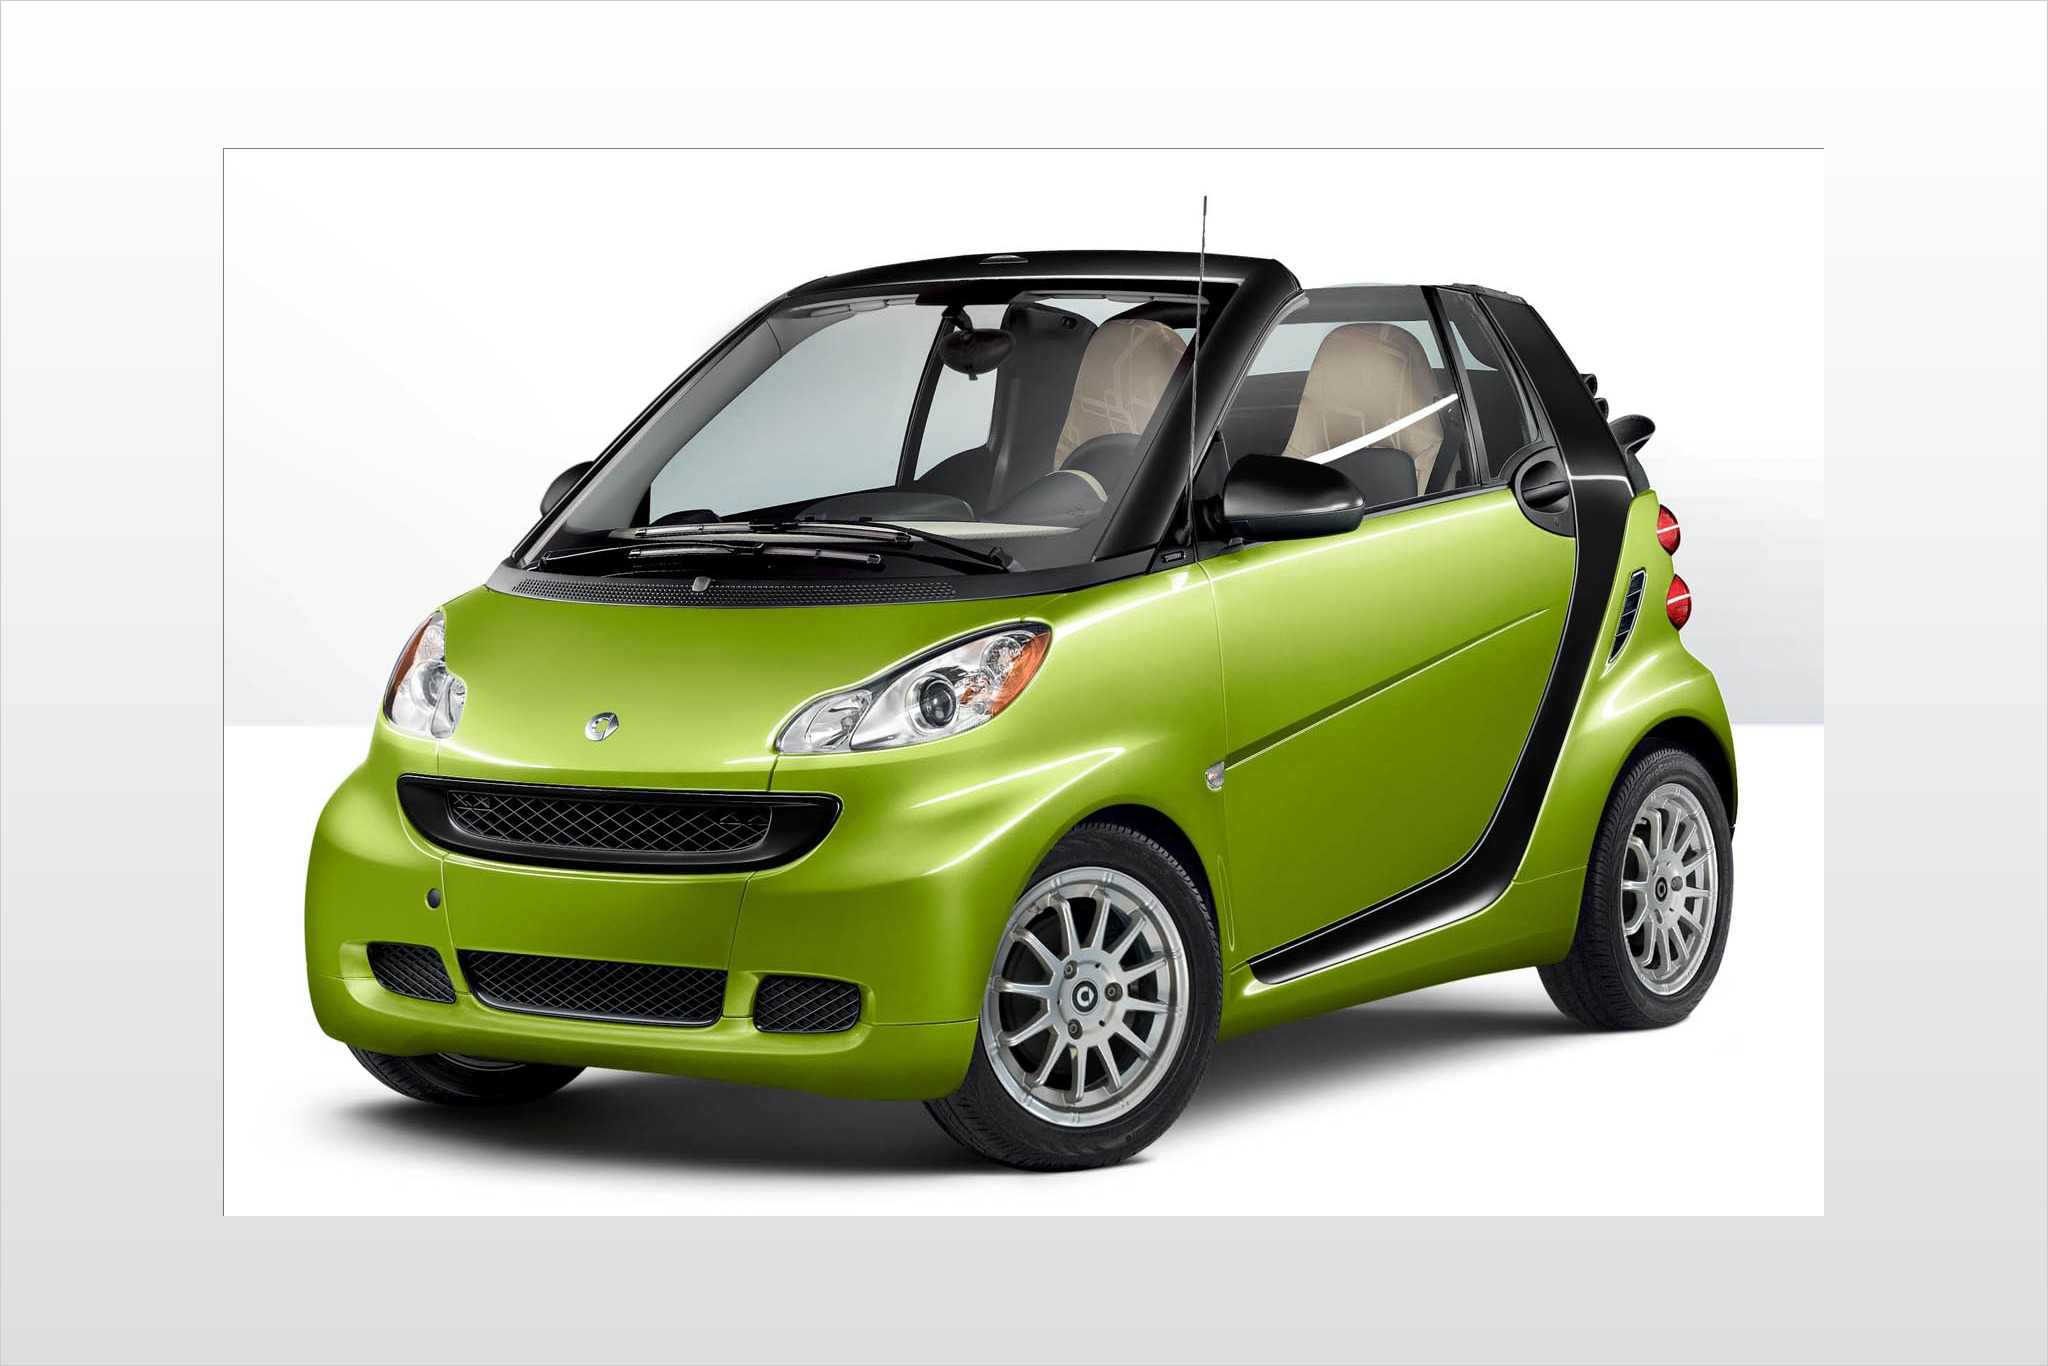 2012 smart fortwo 2dr Hat exterior #7